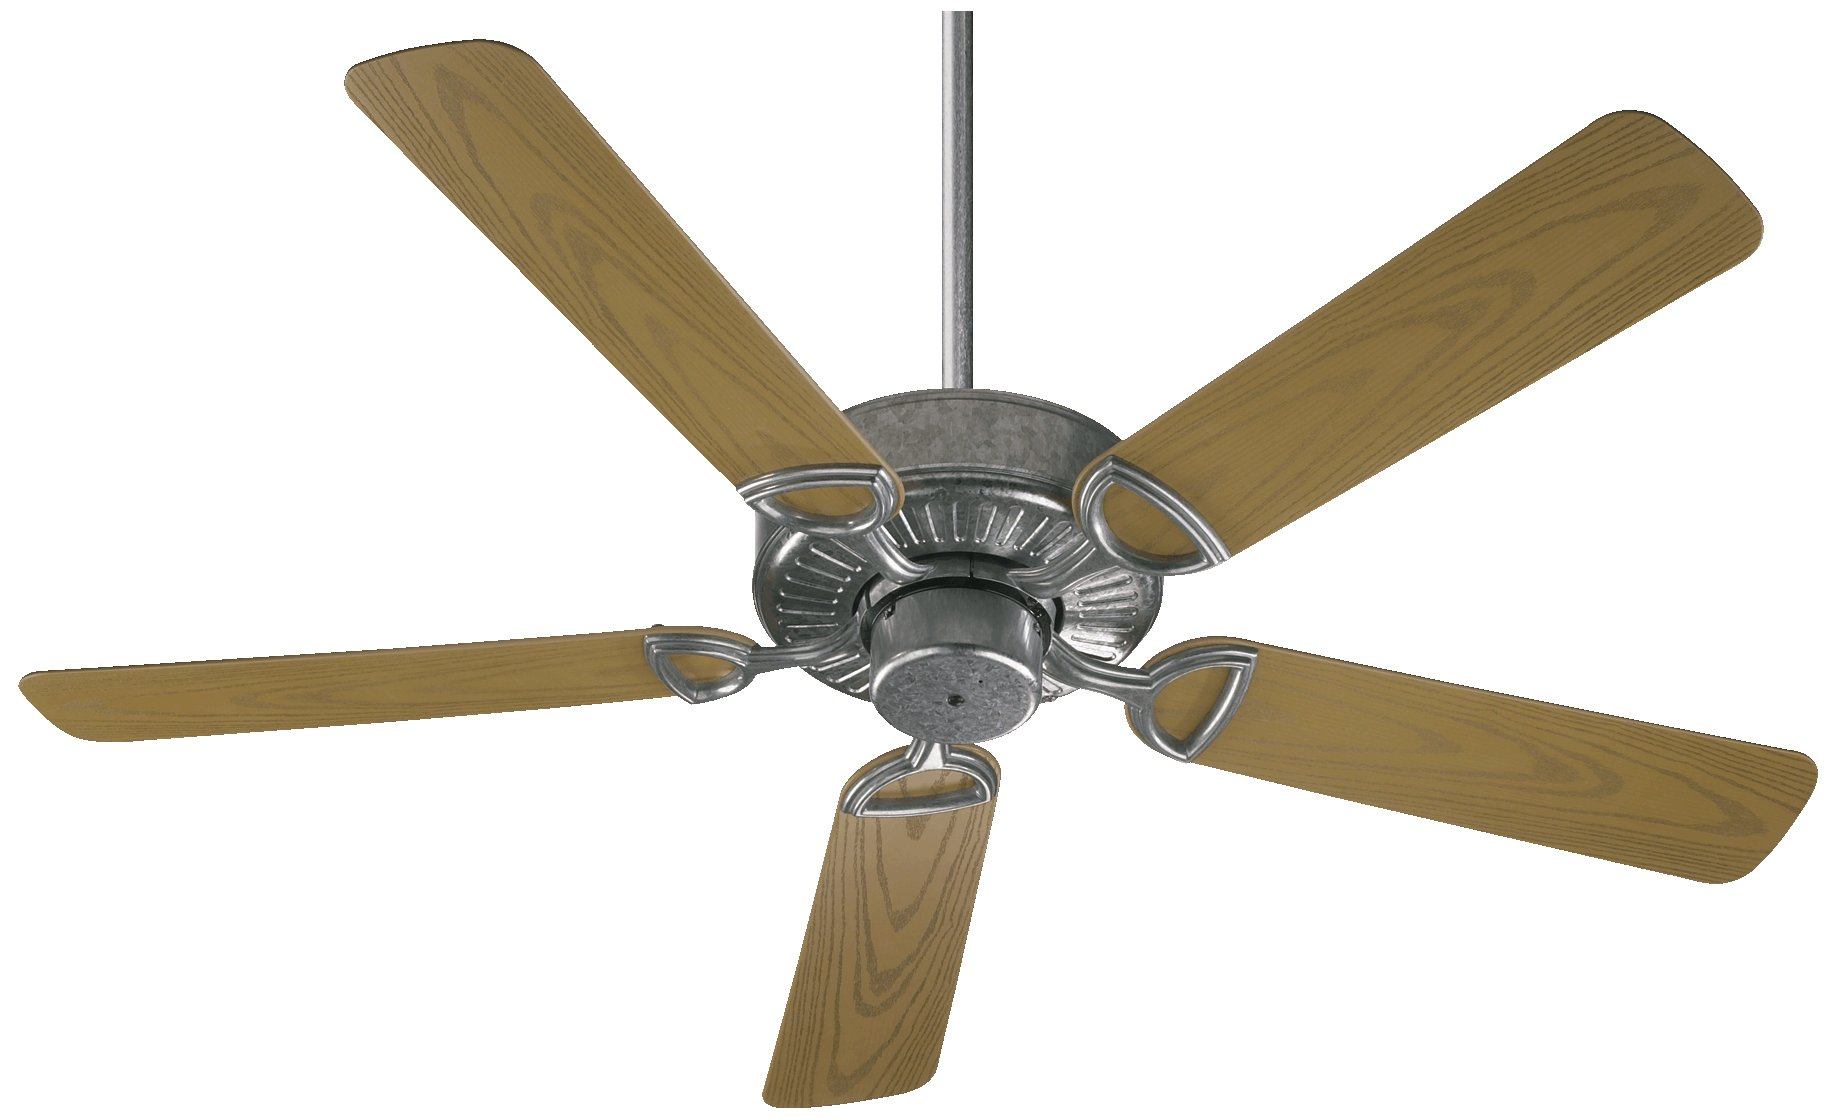 Quorum International 143525-9 Estate Patio Fan, 52'', Galvanized by Quorum